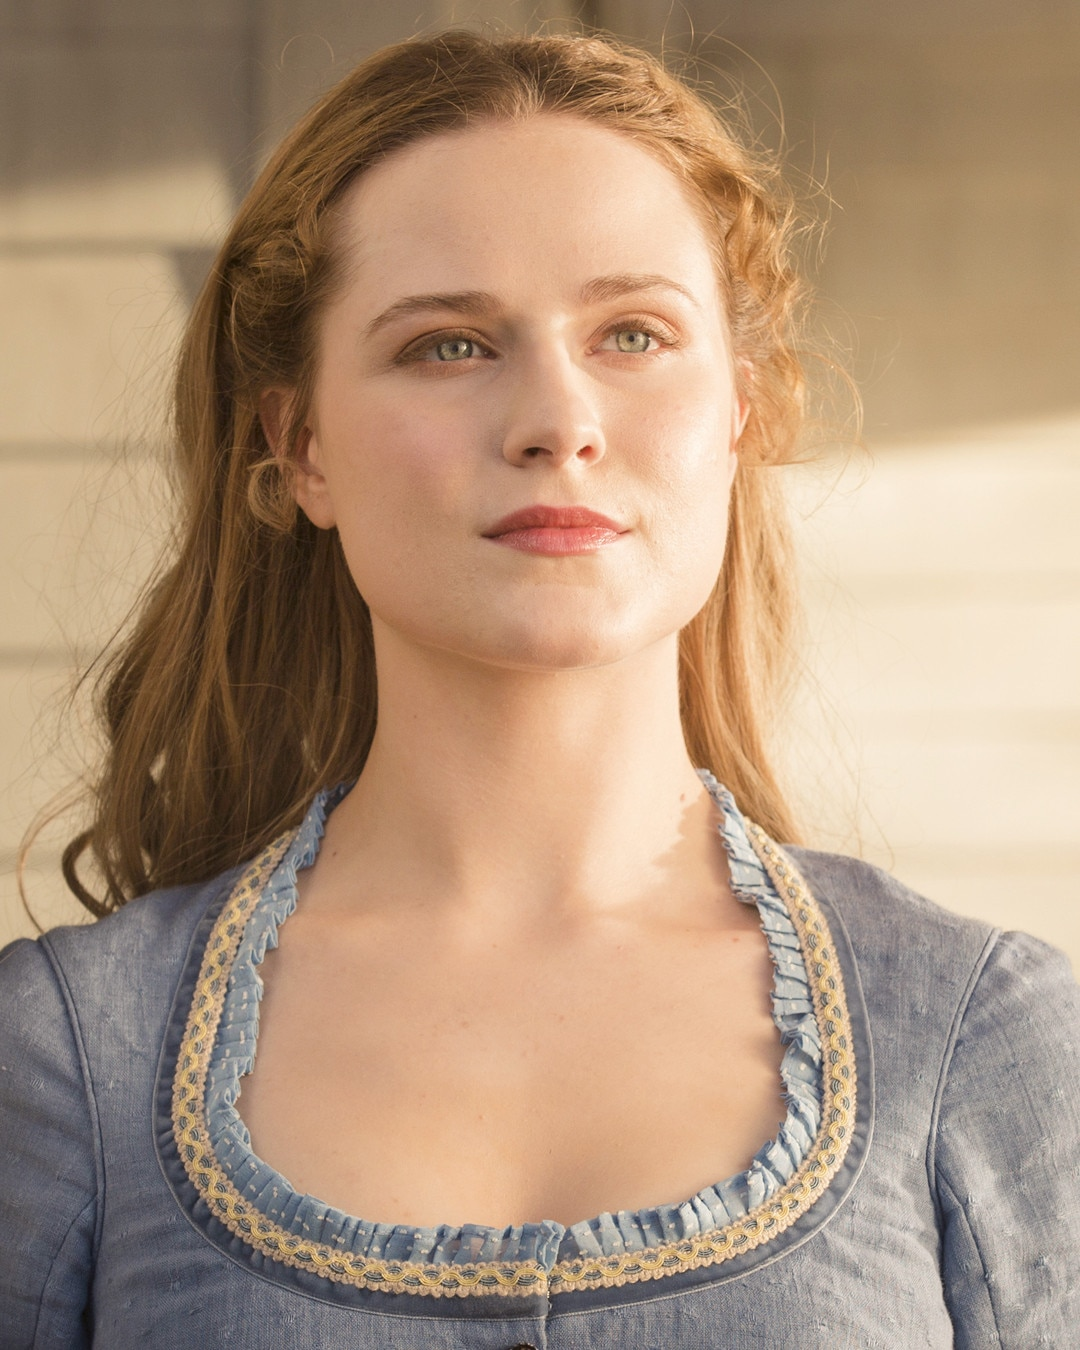 Forum on this topic: Ruth Nelson (actress), evan-rachel-wood/